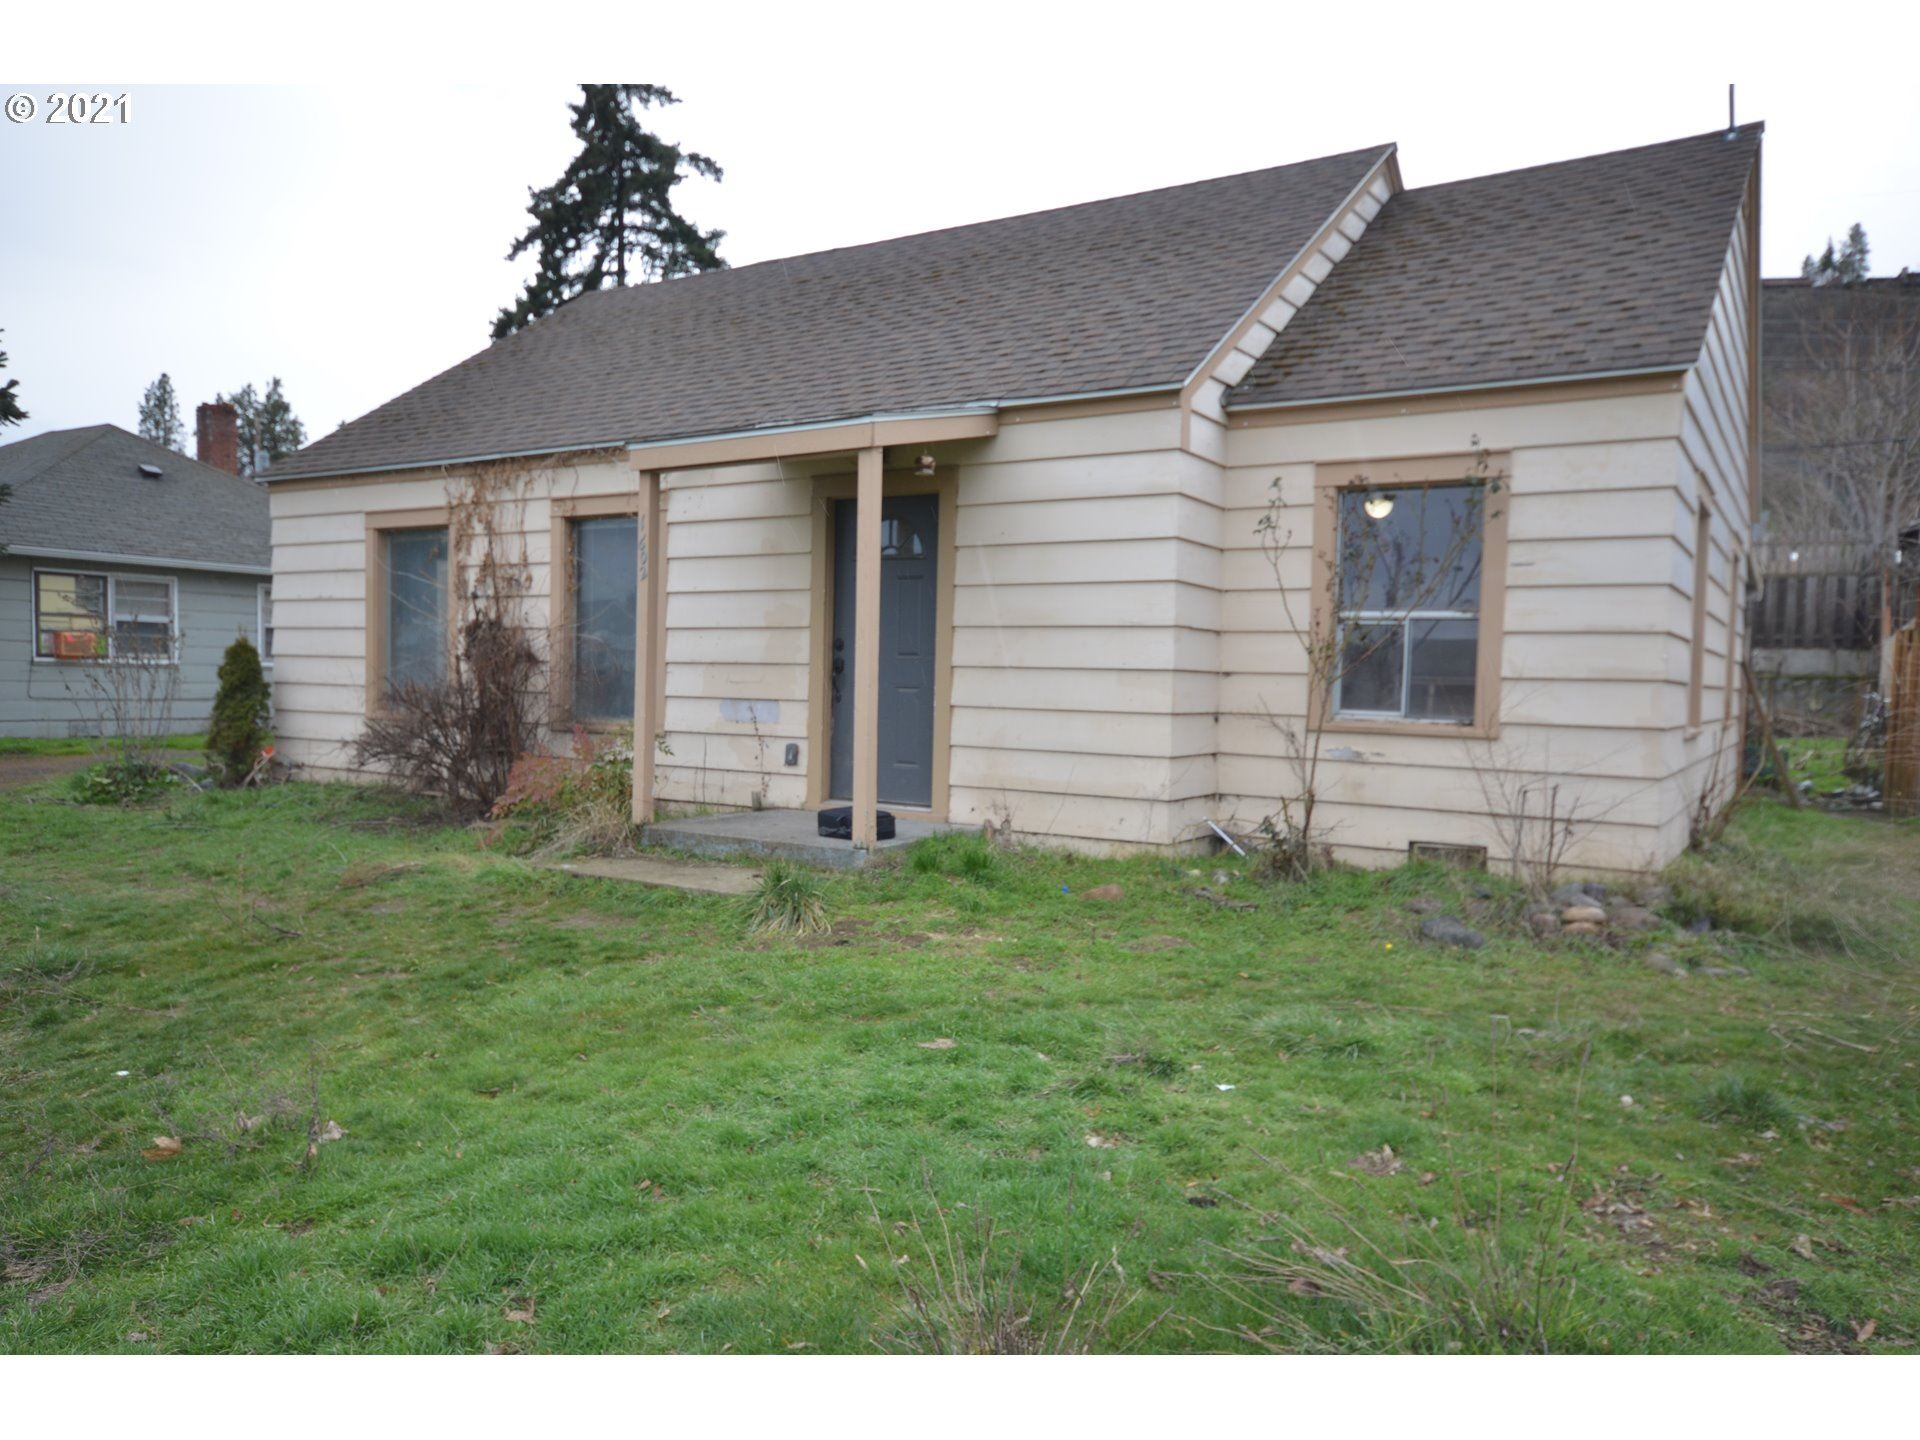 Photo for 1602 W 11TH, The Dalles, OR 97058 (MLS # 21103295)